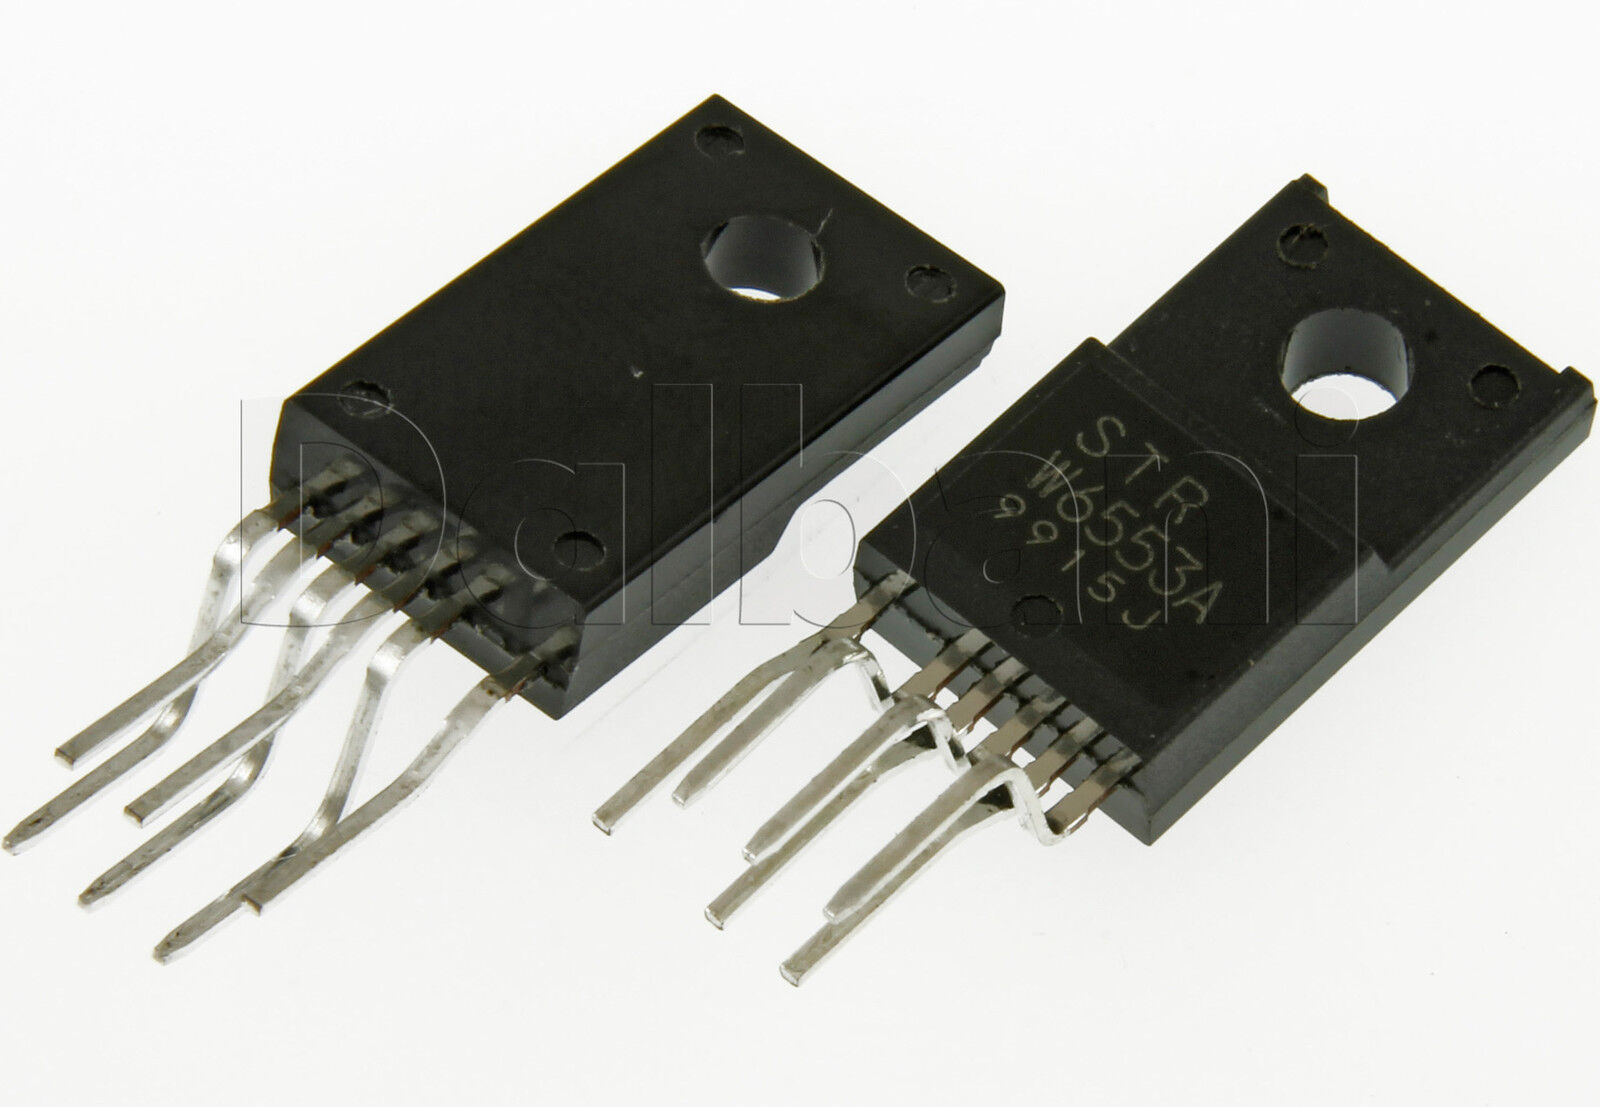 1pcs Sanken STRW6553A Str W6553a Power IC To-220